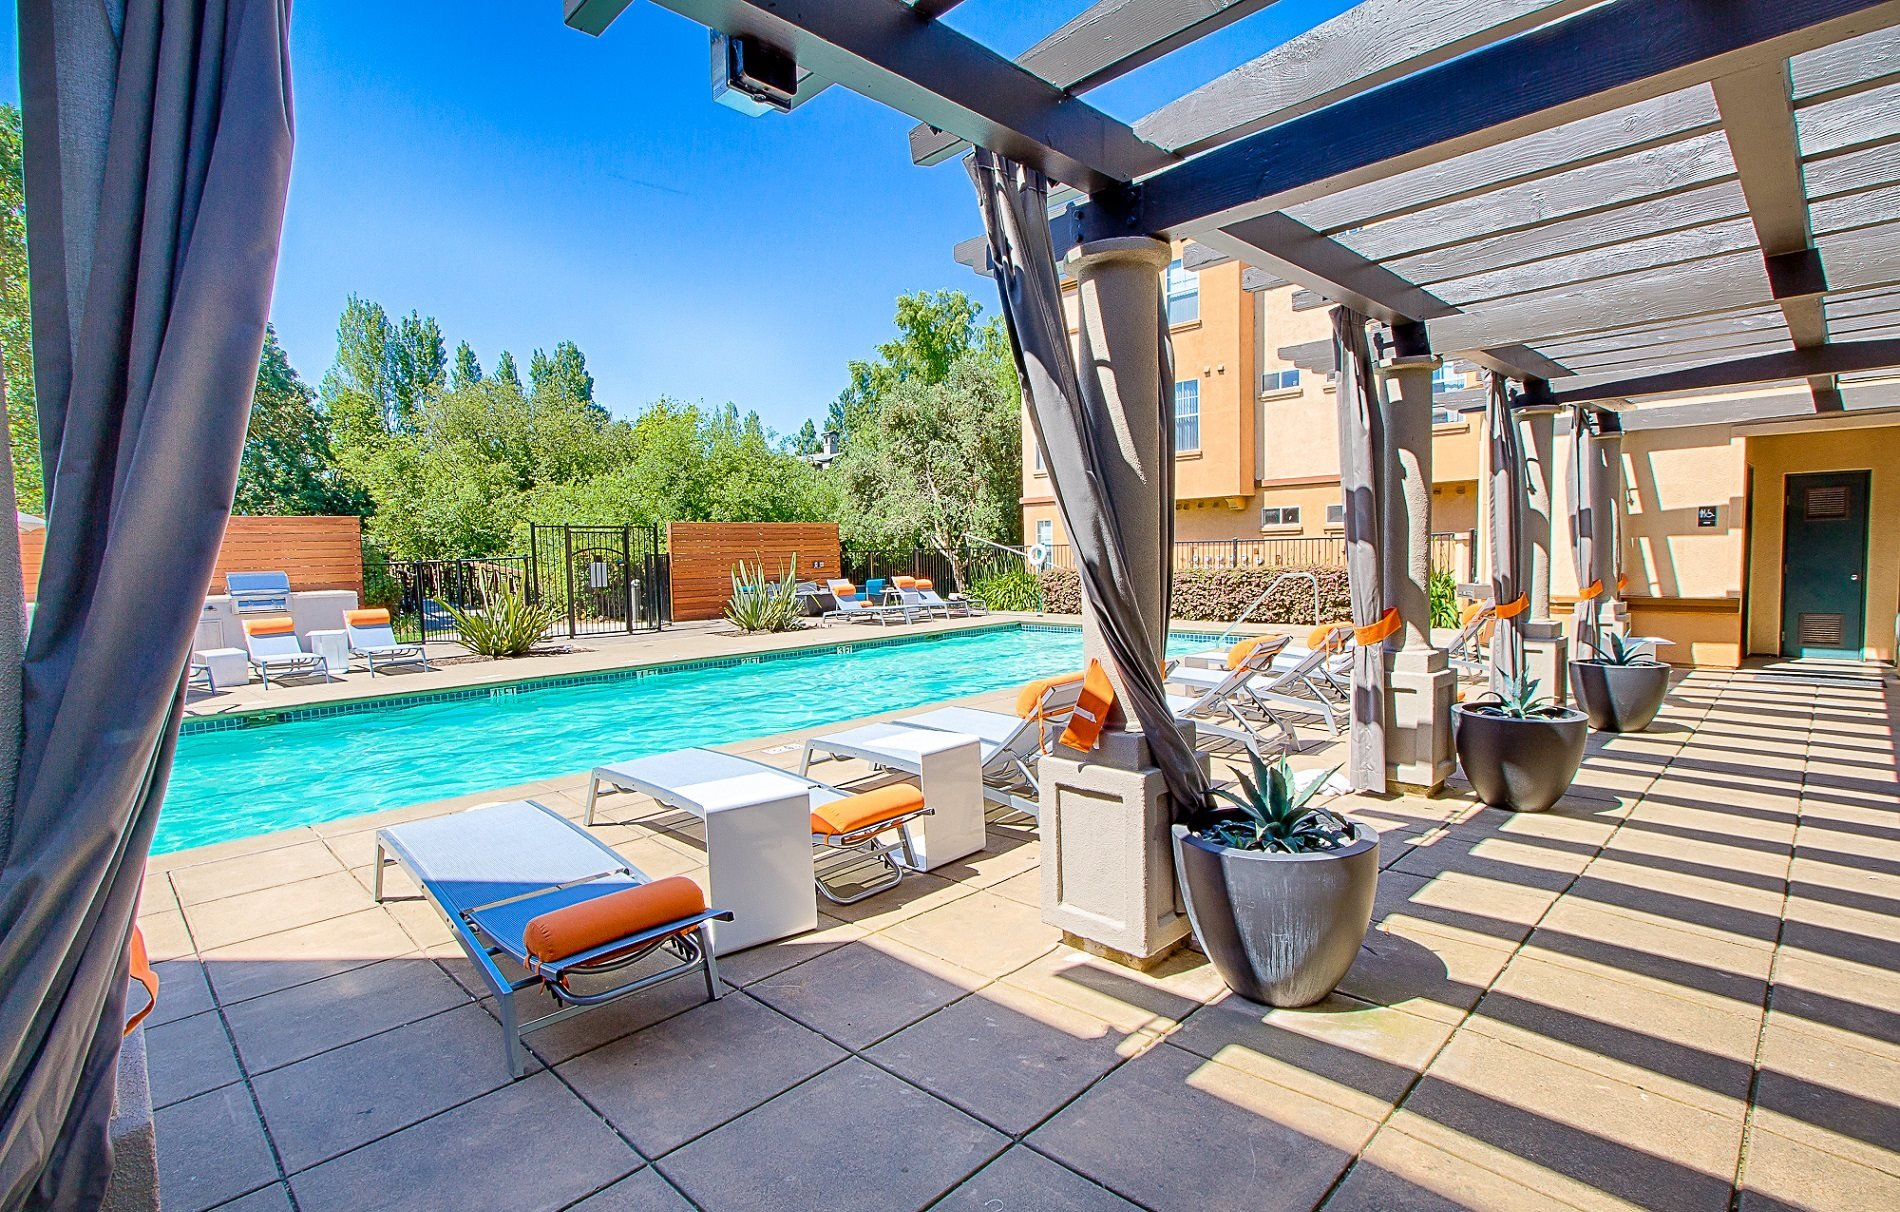 Swimming Pool Relaxing Area at Renaissance Apartment Homes, Santa Rosa, CA,95404